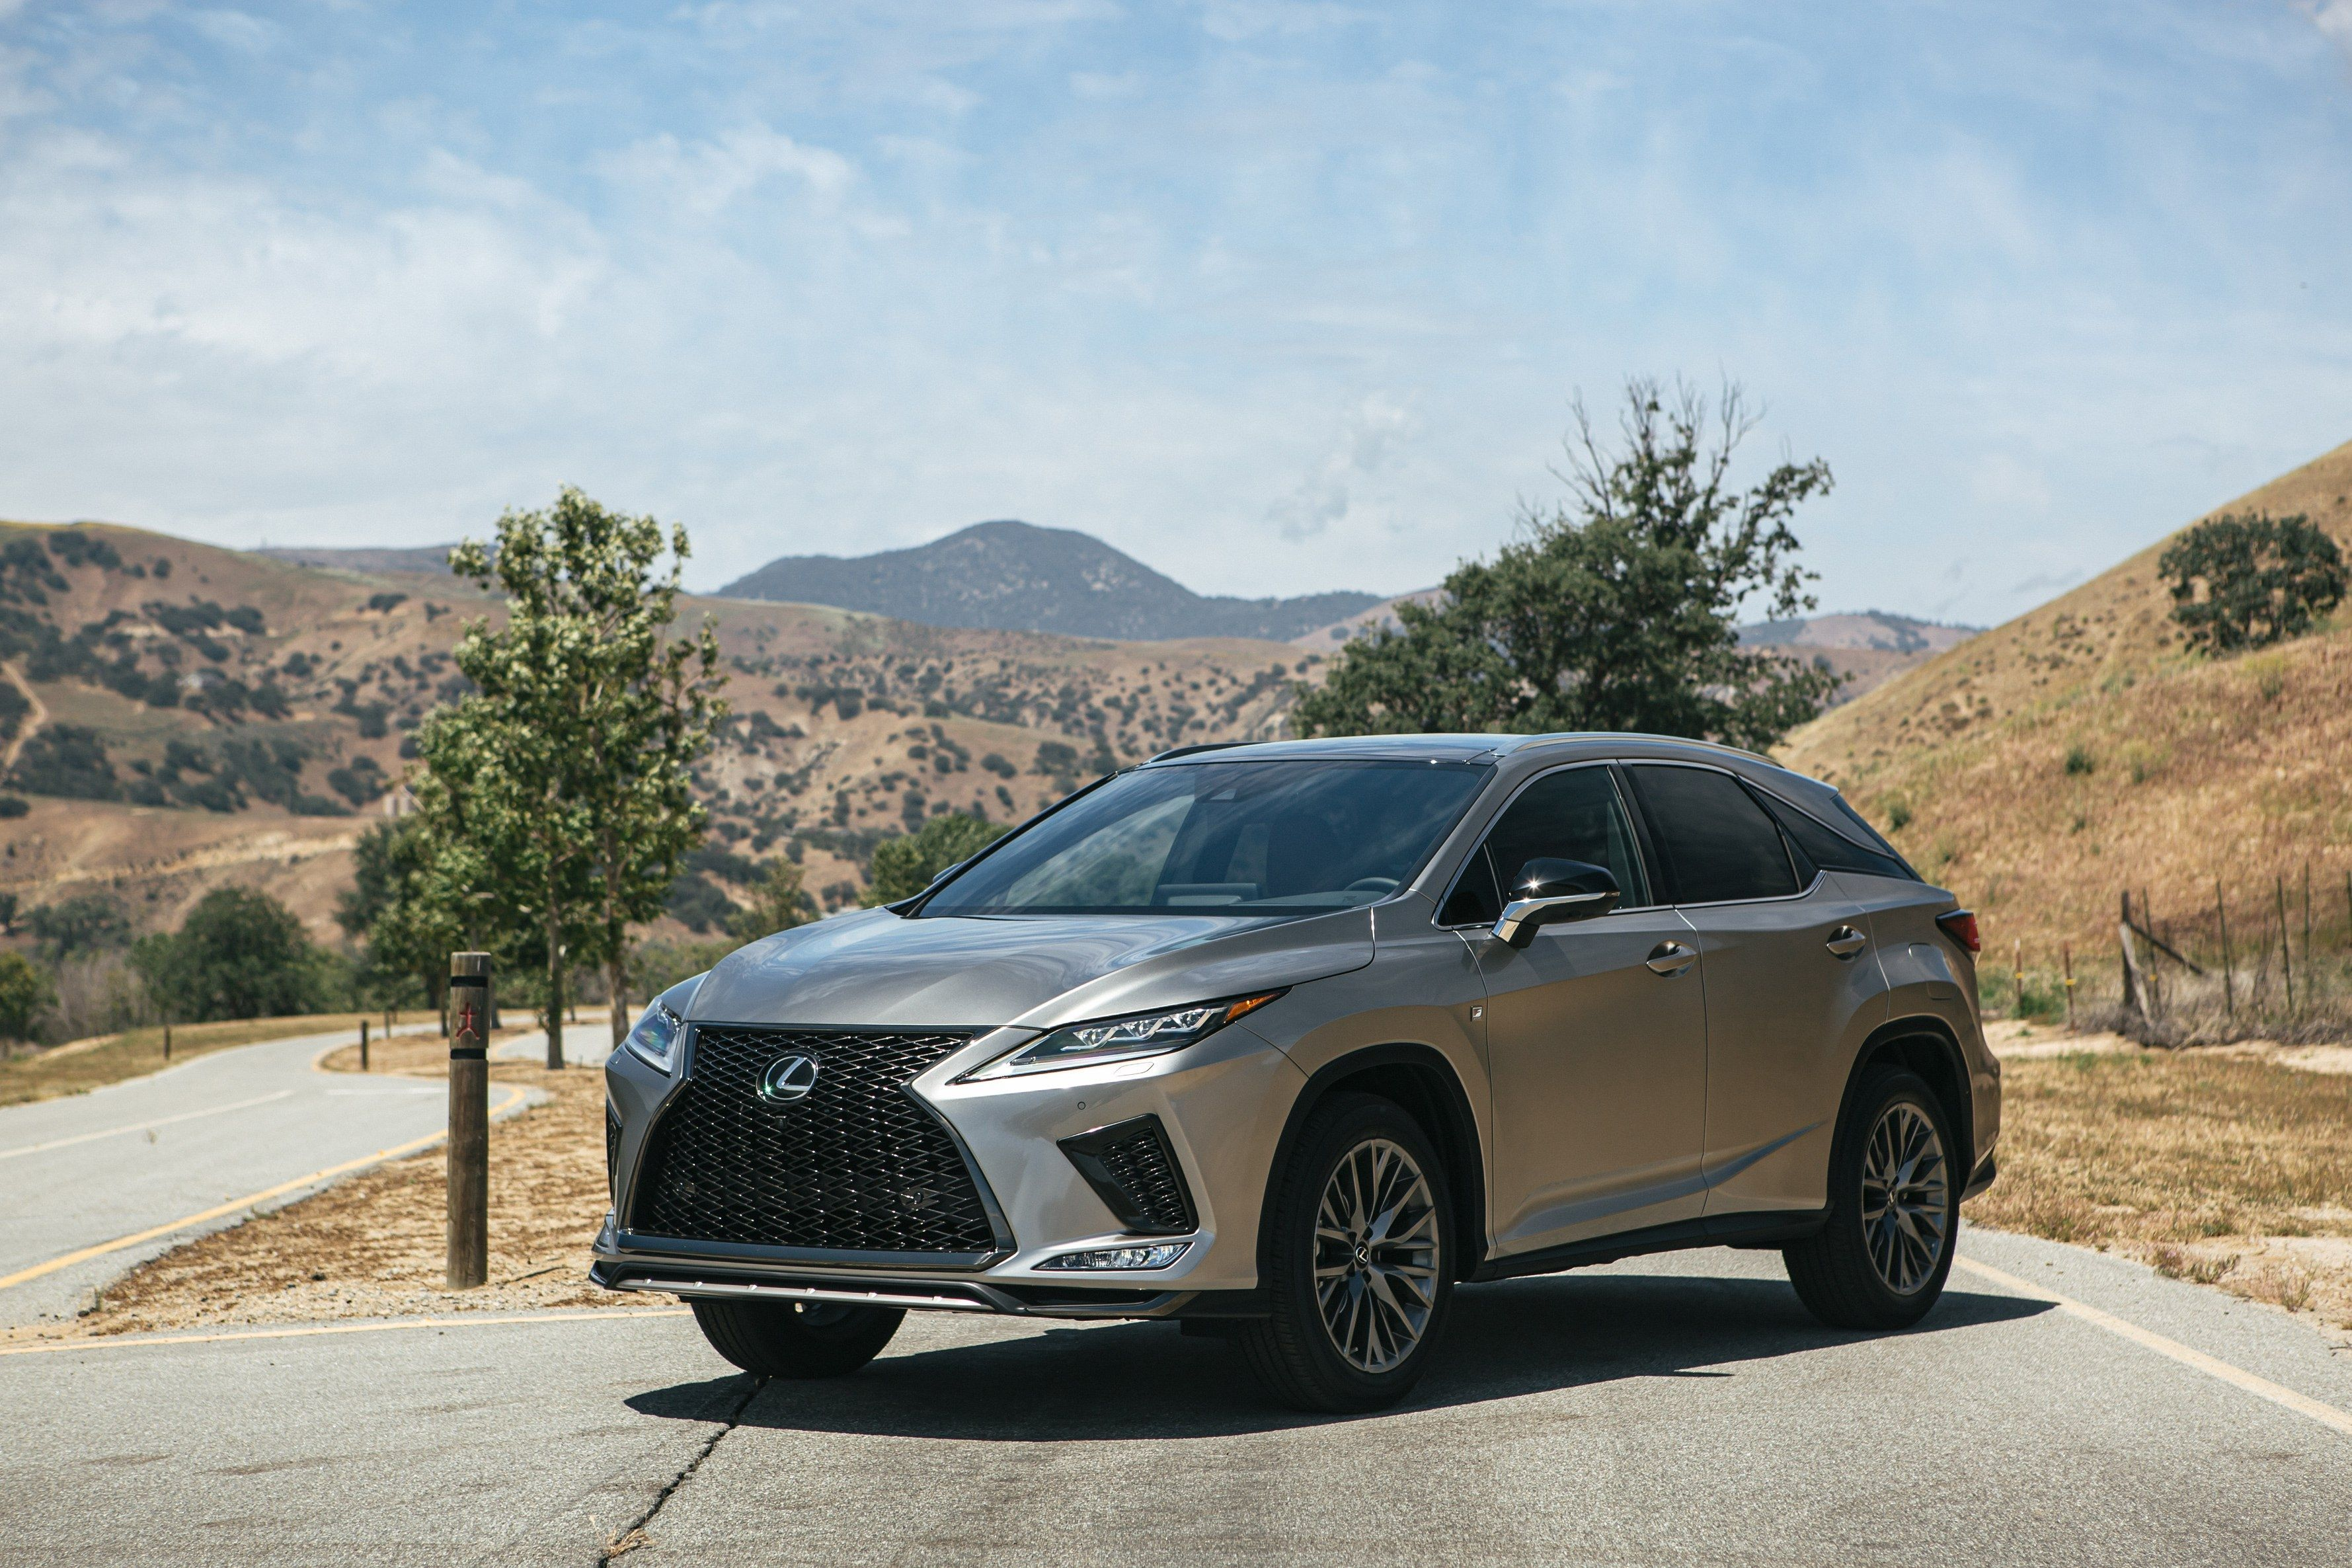 2020 Lexus Rx And Rxl Open A New Chapter For The Iconic Luxury First Drive Price Performance And Review With Images Lexus Rx 350 Lexus Lexus Rx 350 Sport